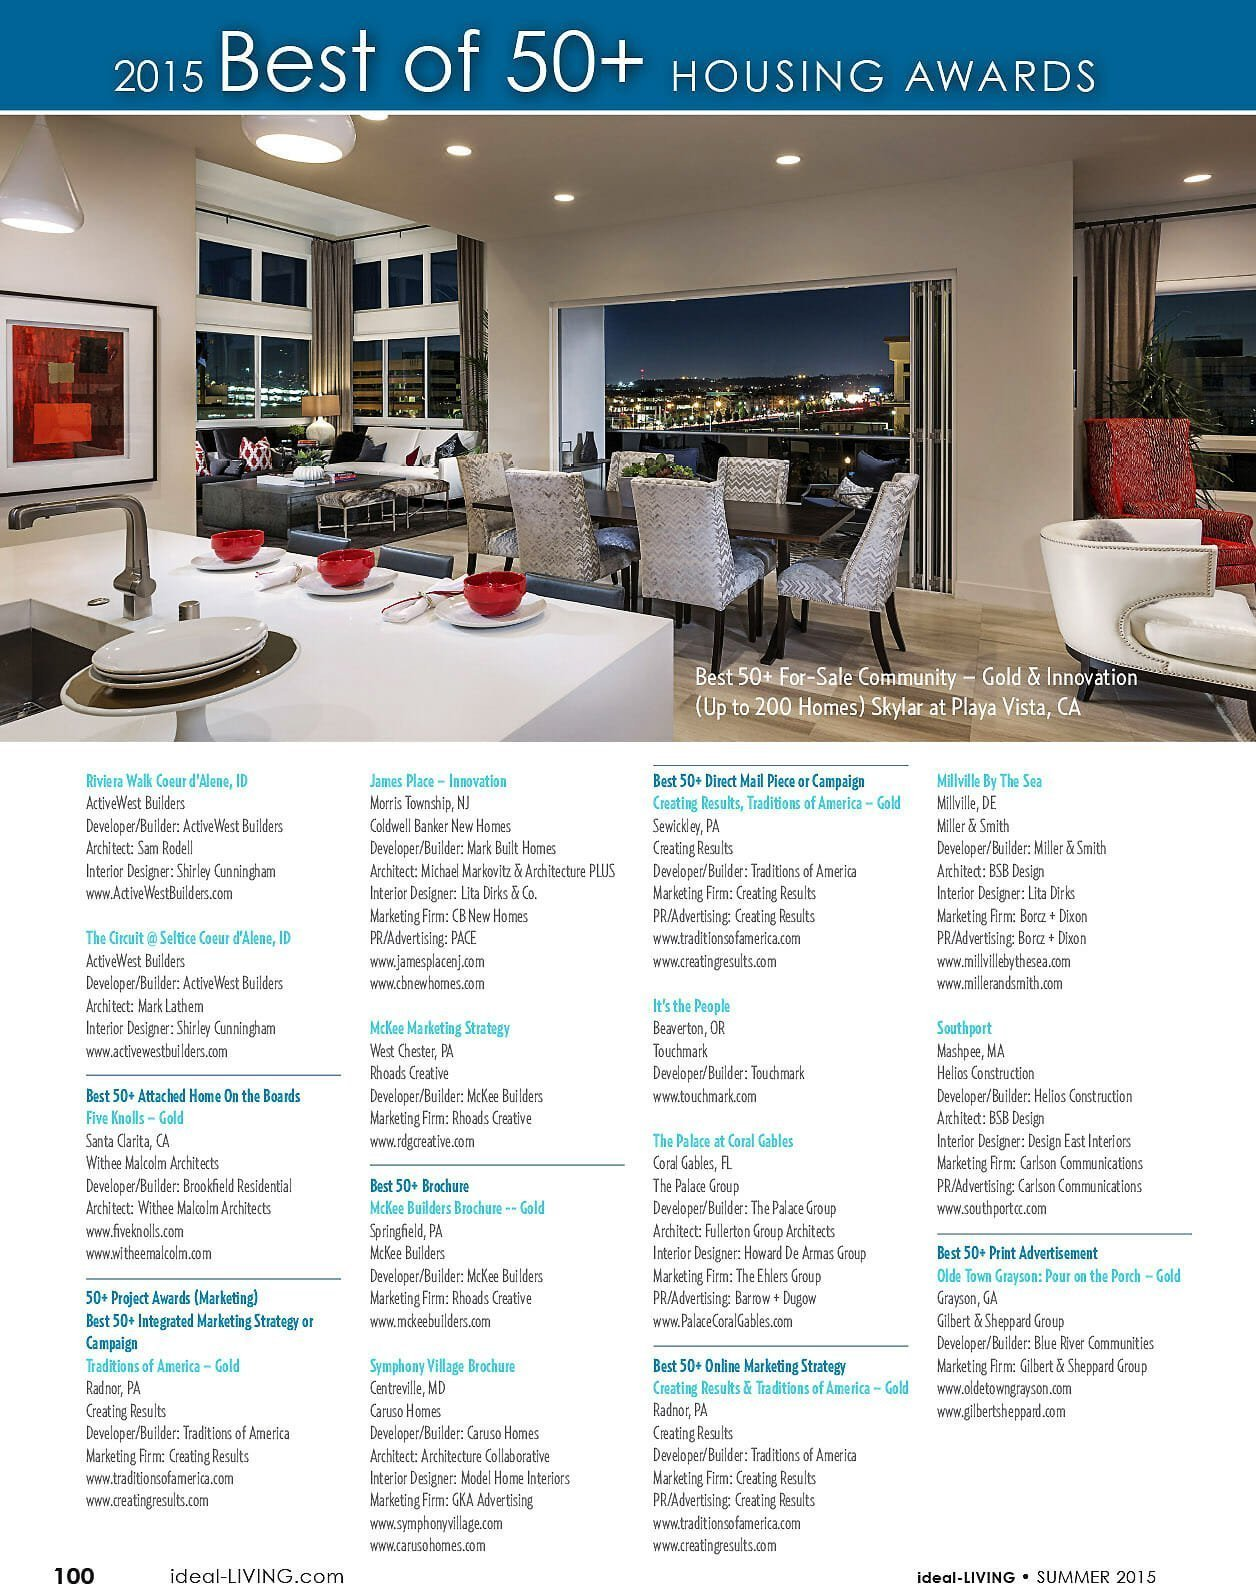 2015 Best of 50+ housing awards page 6